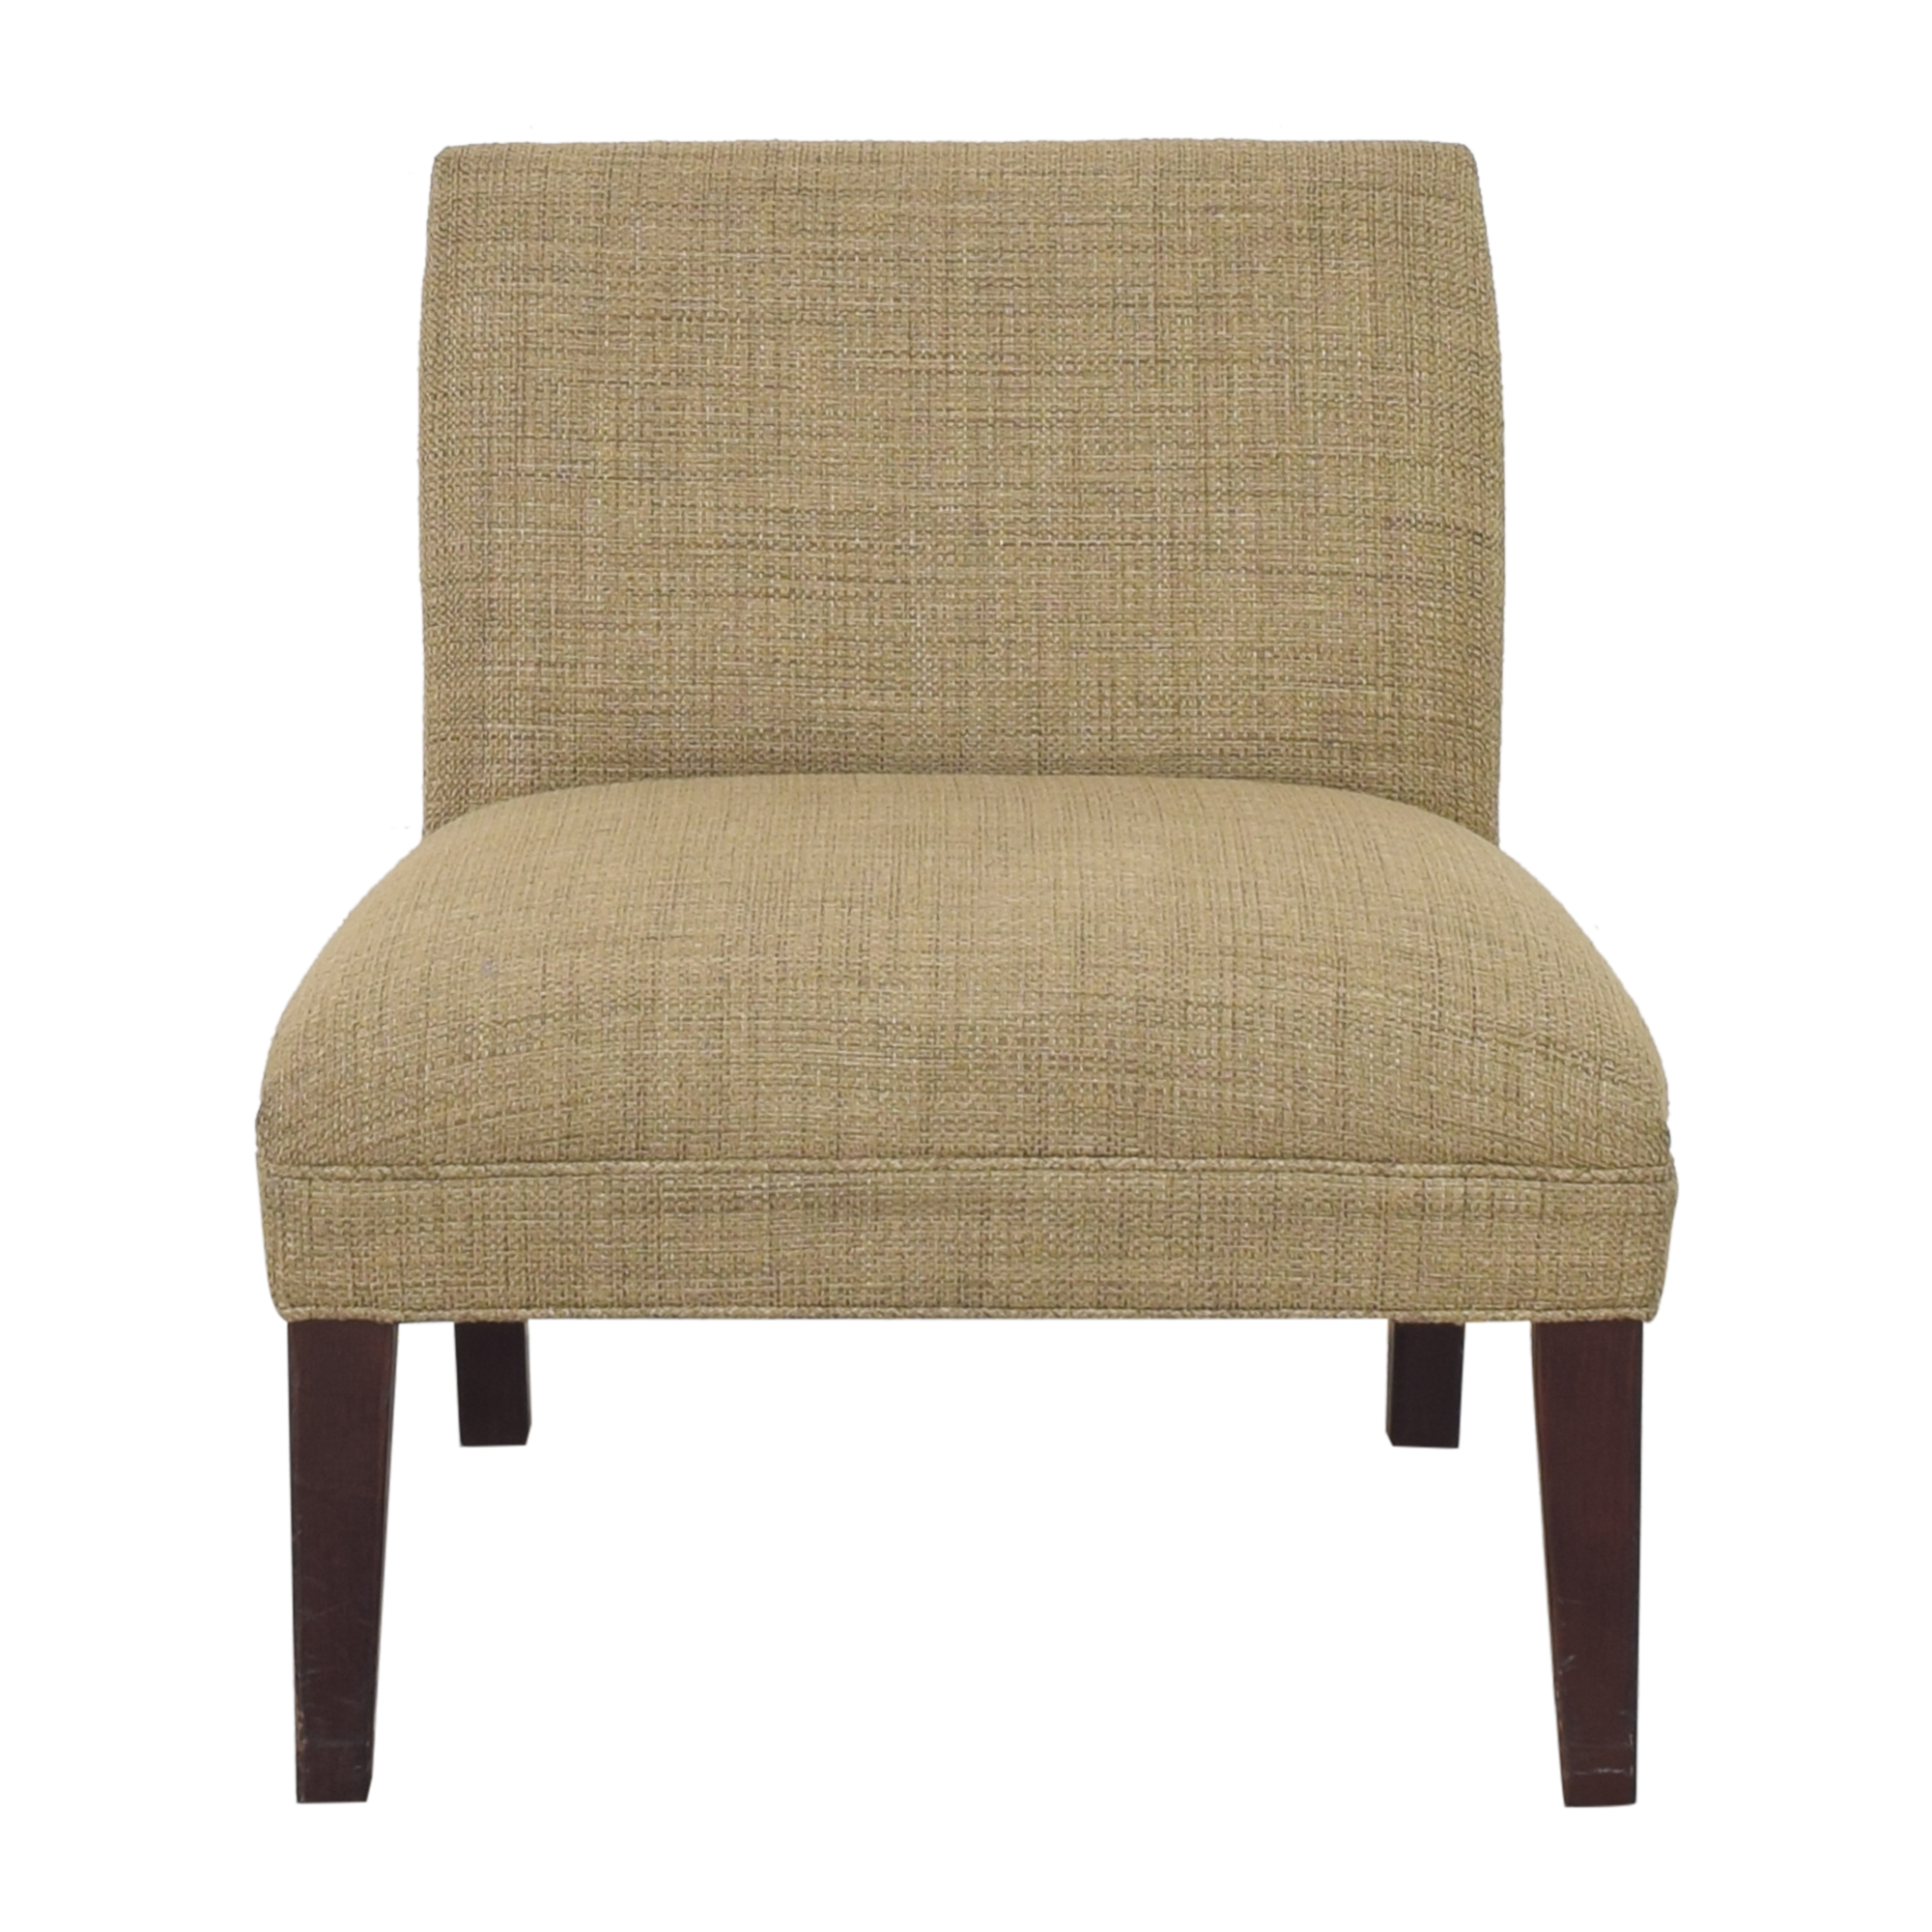 Crate & Barrel Crate & Barrel Accent Chair ma